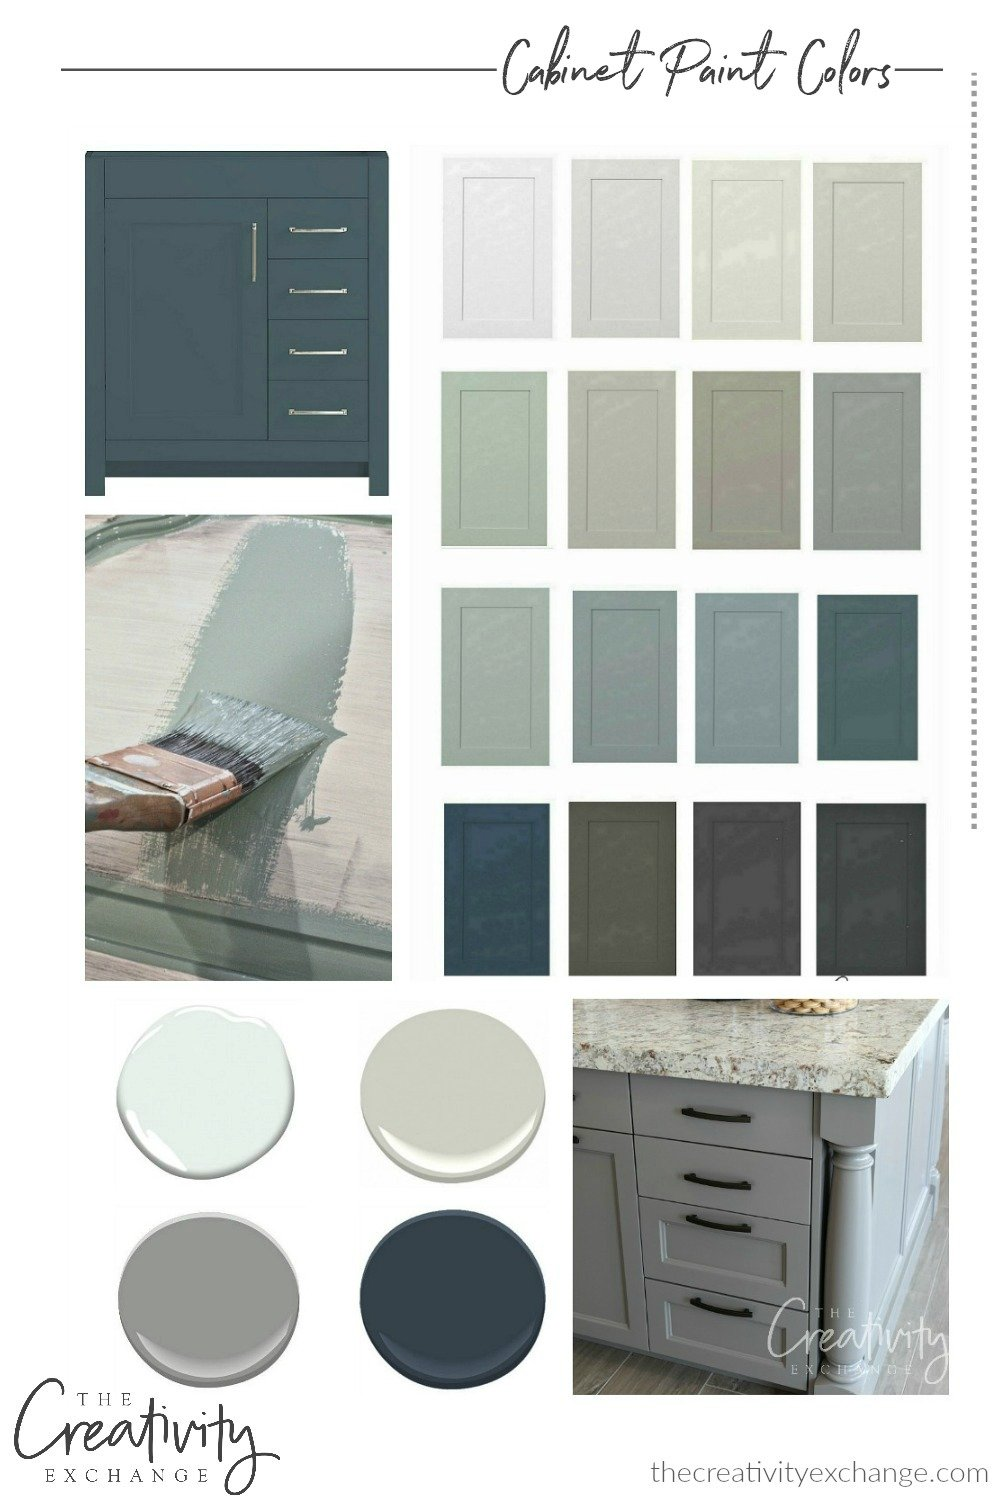 30 Beautiful Cabinet Paint Colors for Kitchens and Bathrooms